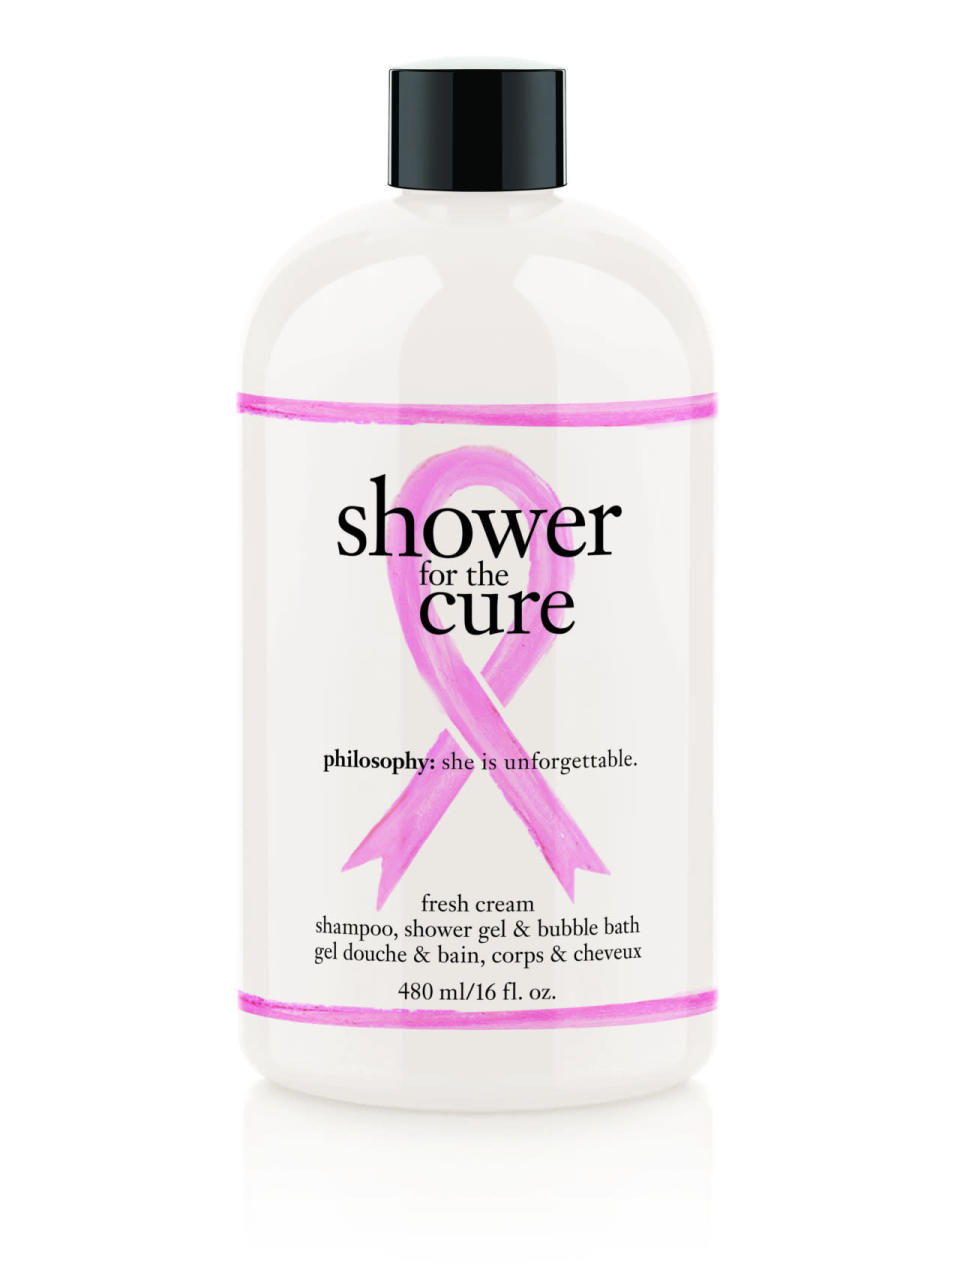 Thanks to milk proteins and tangerine nectar, this gentle, creamy formula will leave your skin and hair ultra soft and lightly scented. 100% of net proceeds support the entertainment industry foundation's women's cancer research fund.